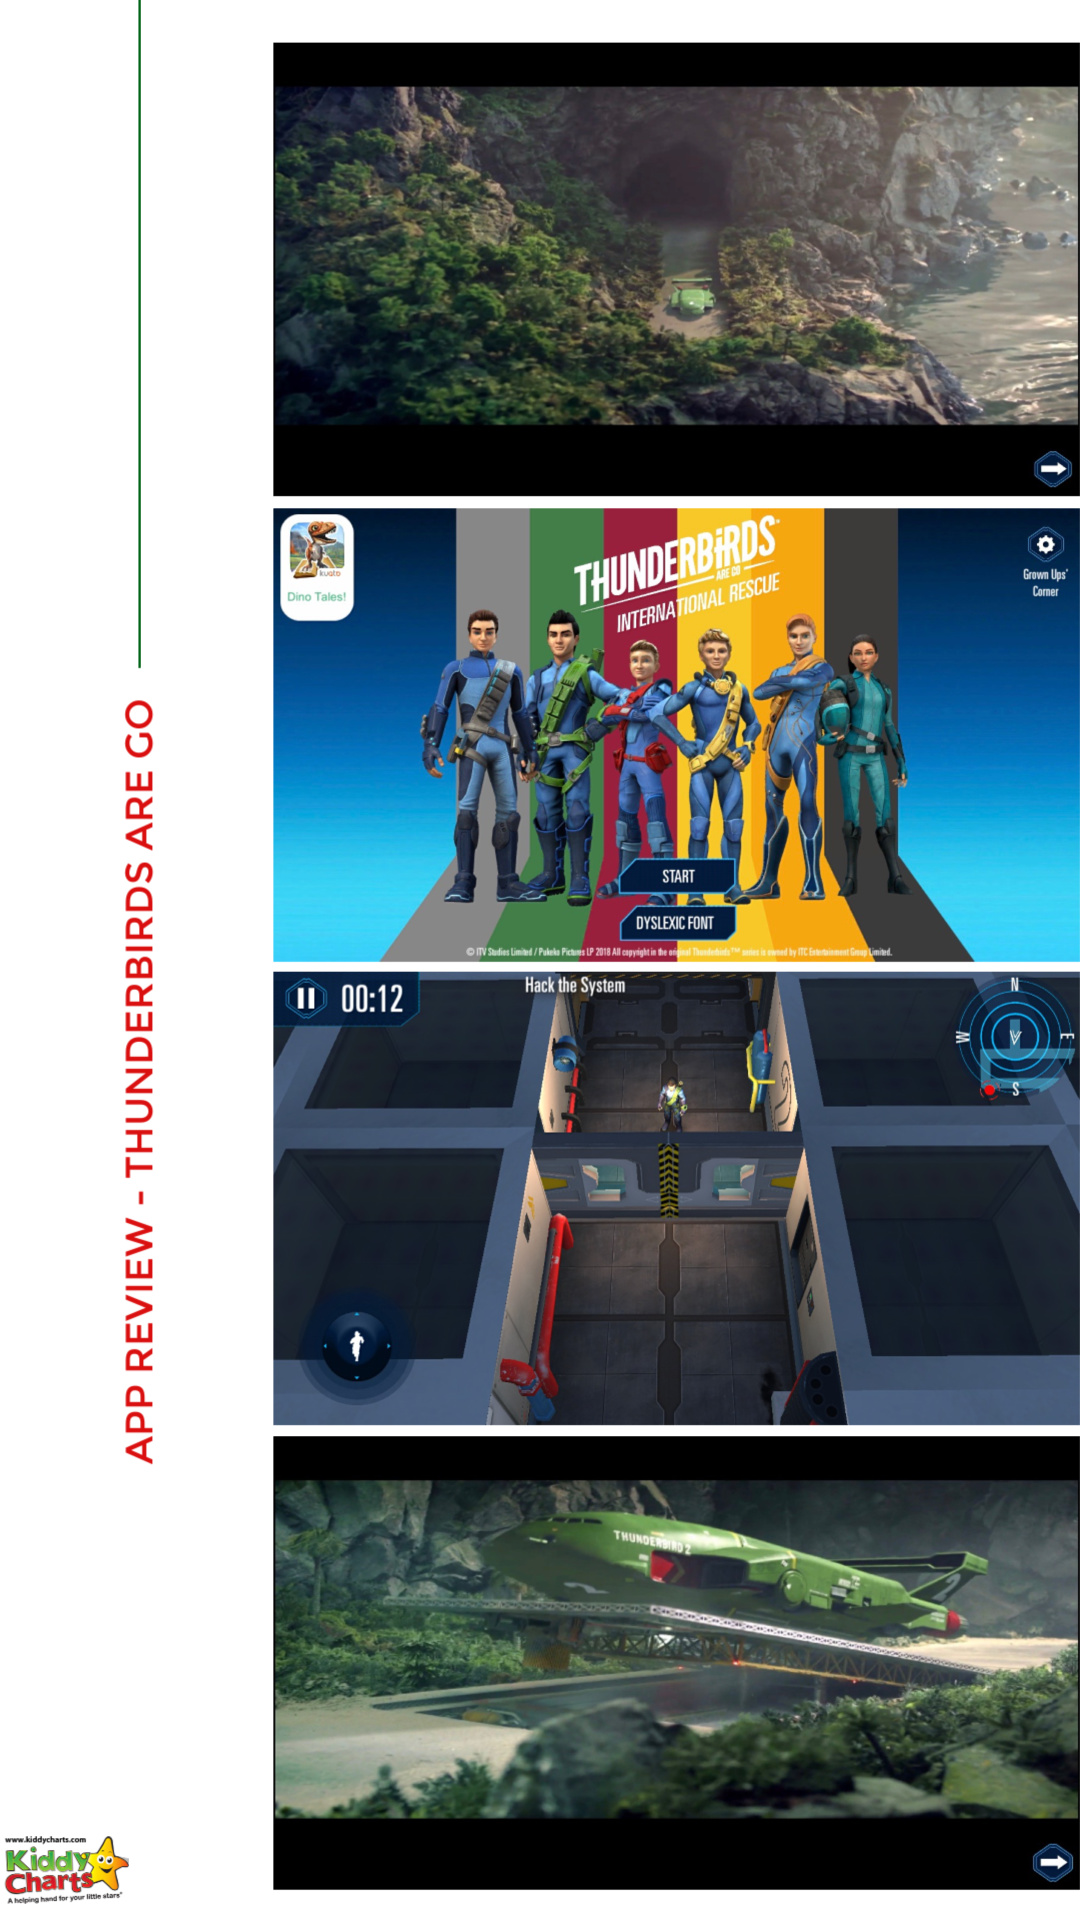 Thunderbirds are Go is the new app from ITV and Kuato - and we've taken a look. Why not pop over and take a look! #apps #technology #reviews #iPhone